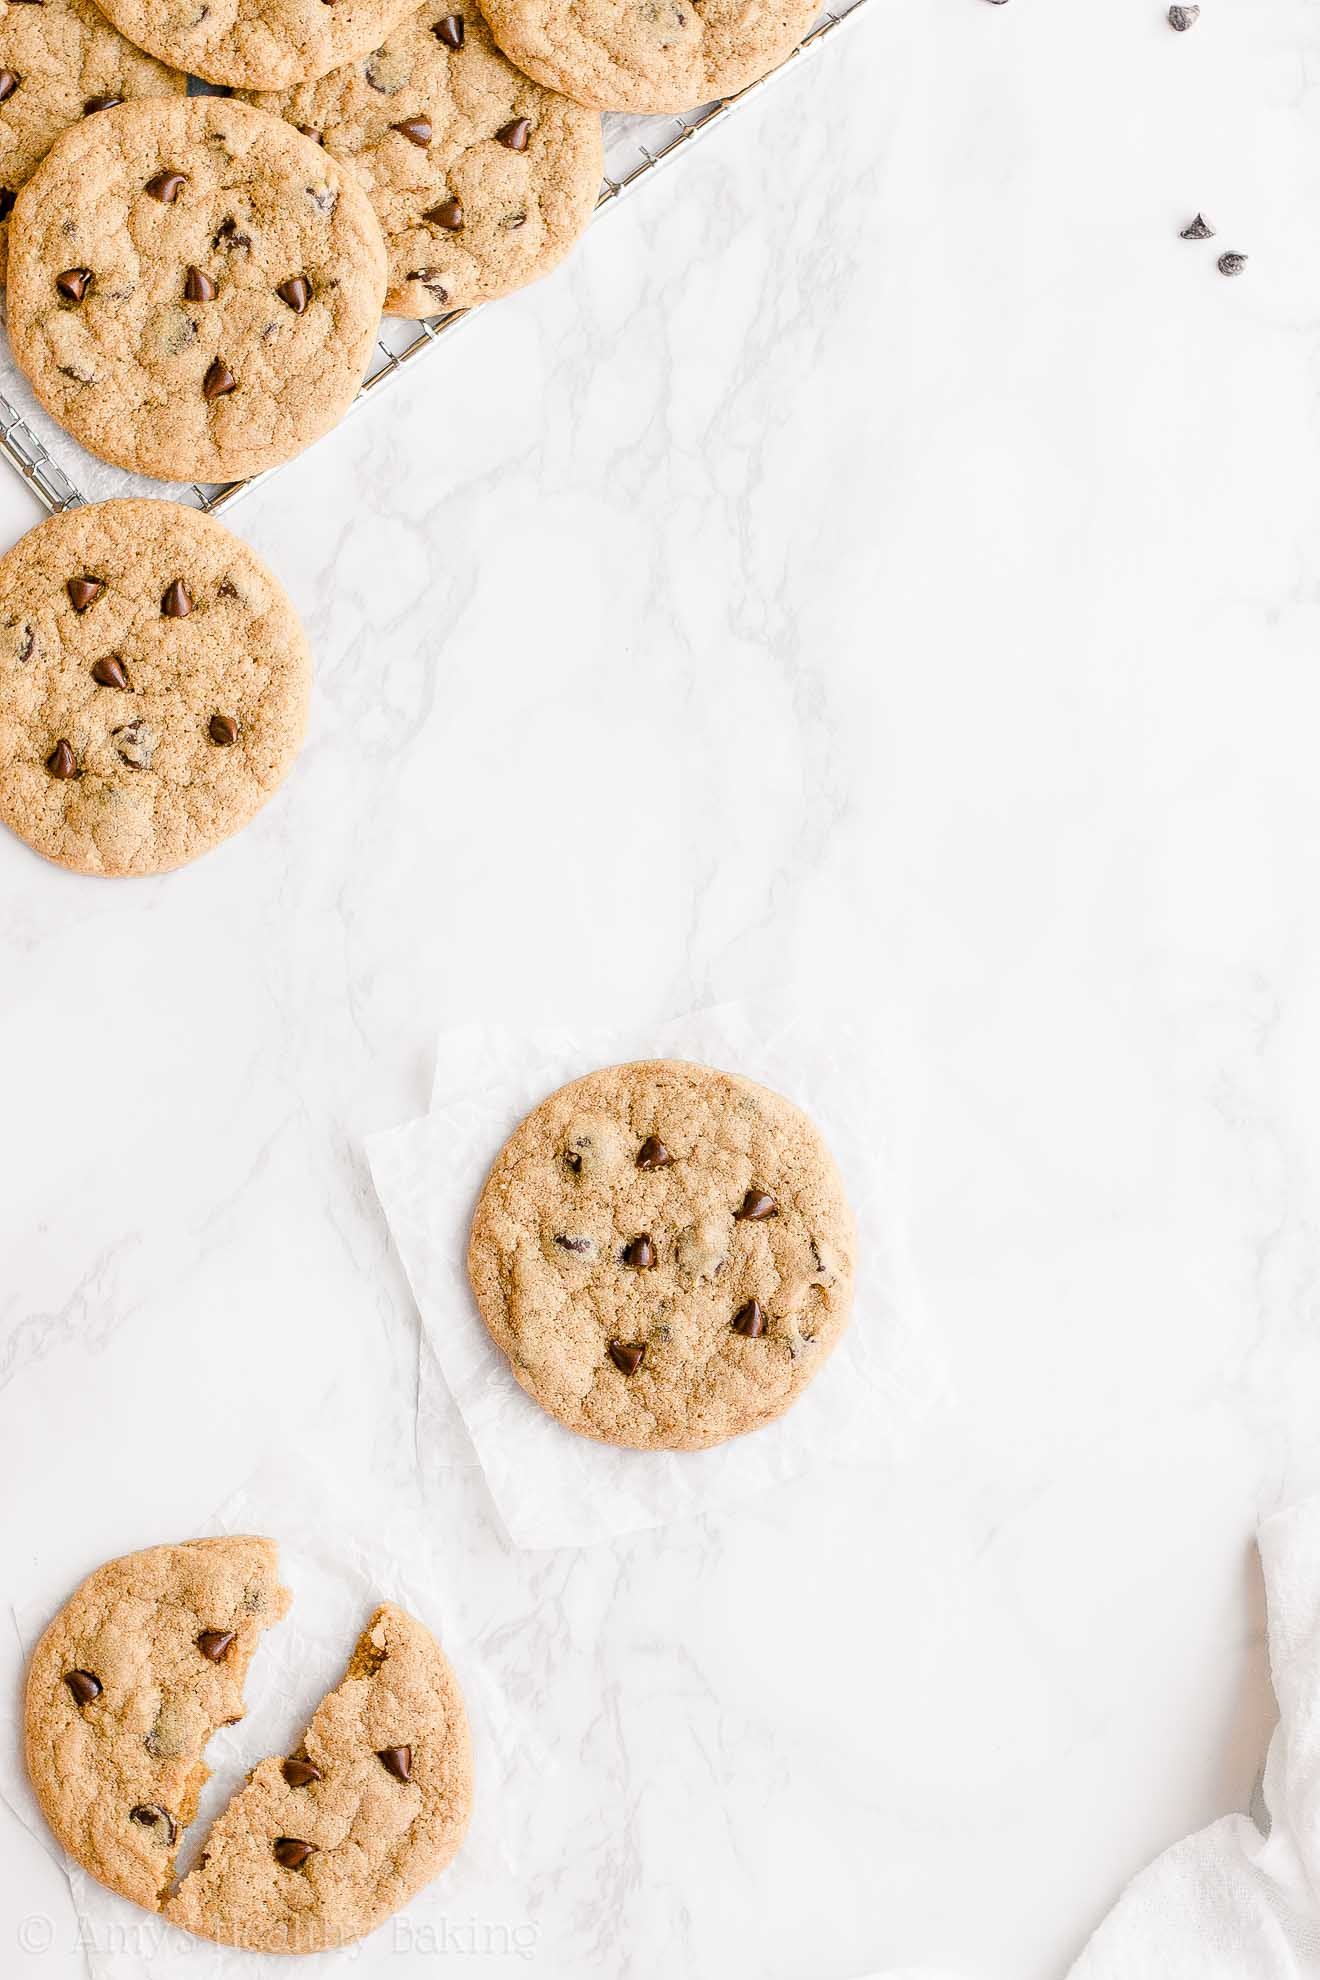 Best Easy Healthy Egg-Free Small Batch One-Bowl Chocolate Chip Cookies